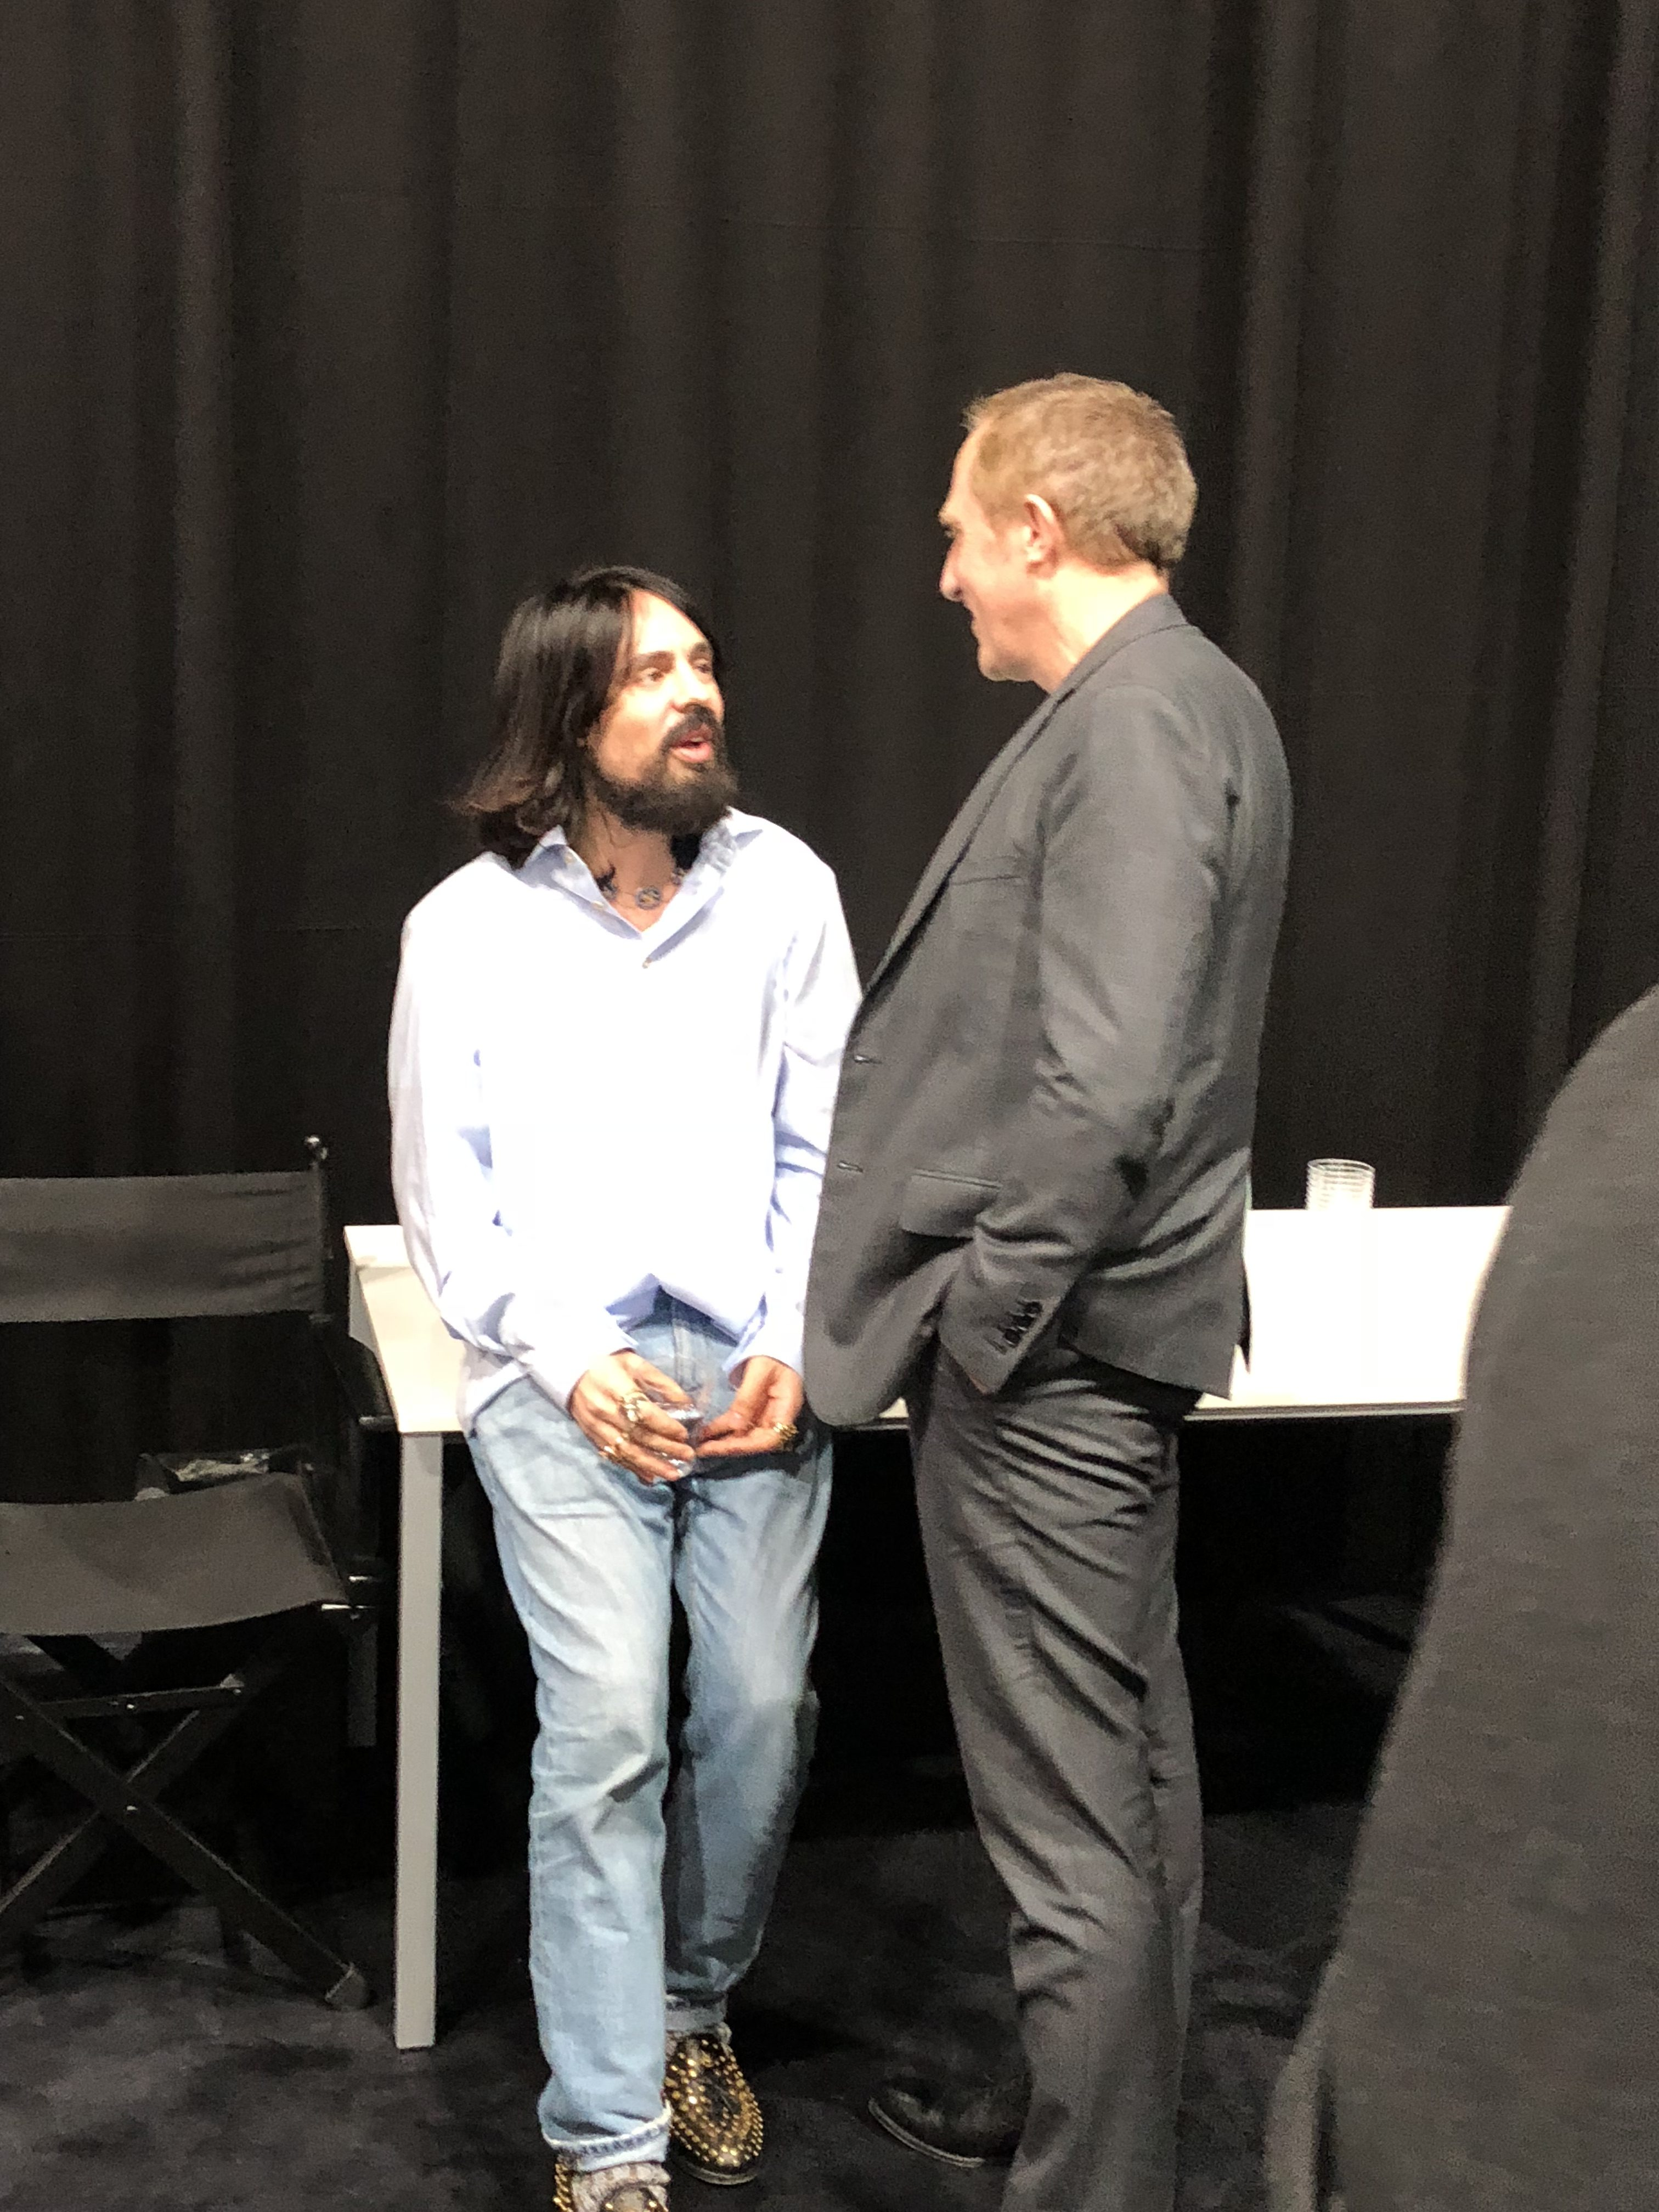 ad9800895a6 Alessandro Michele and Francois Henri Pinault having a little chat  backstage after the Gucci F W 2018 presentation